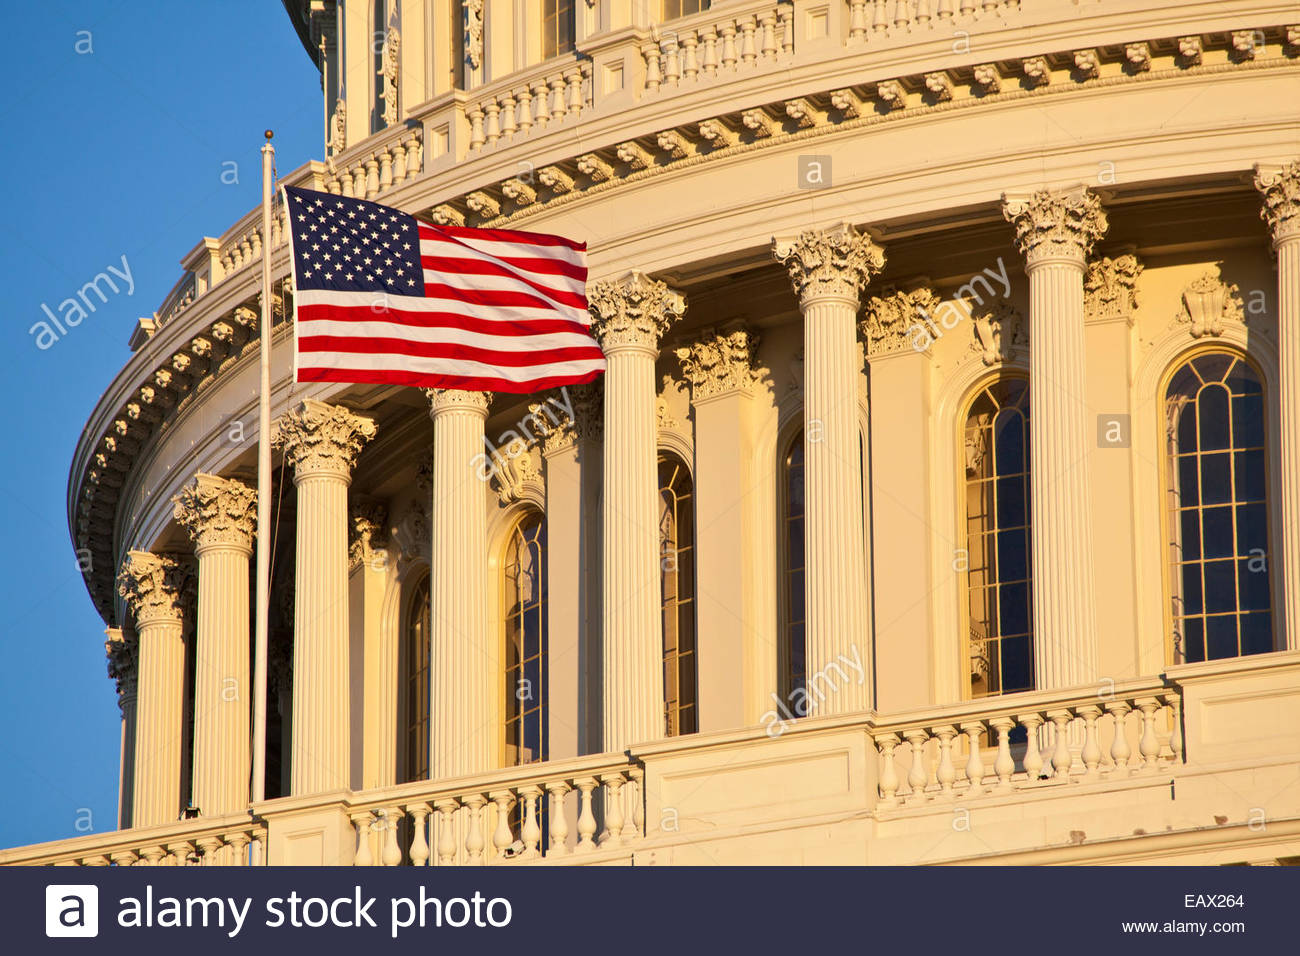 Close up view of the American flag flown on the US Capitol Building. - Stock Image